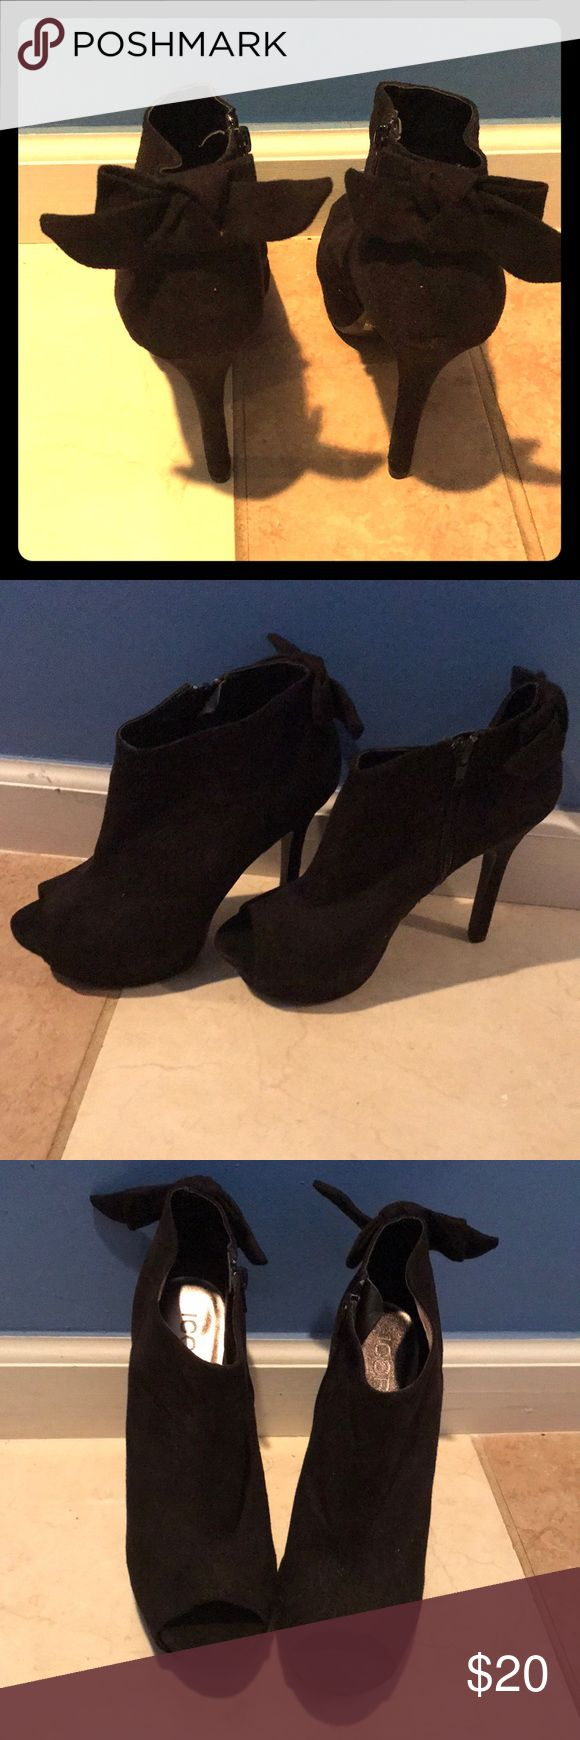 Black heel booties Black suede heels, with bow on the upper heel toe out in front, and zipper on side Shoes Heels